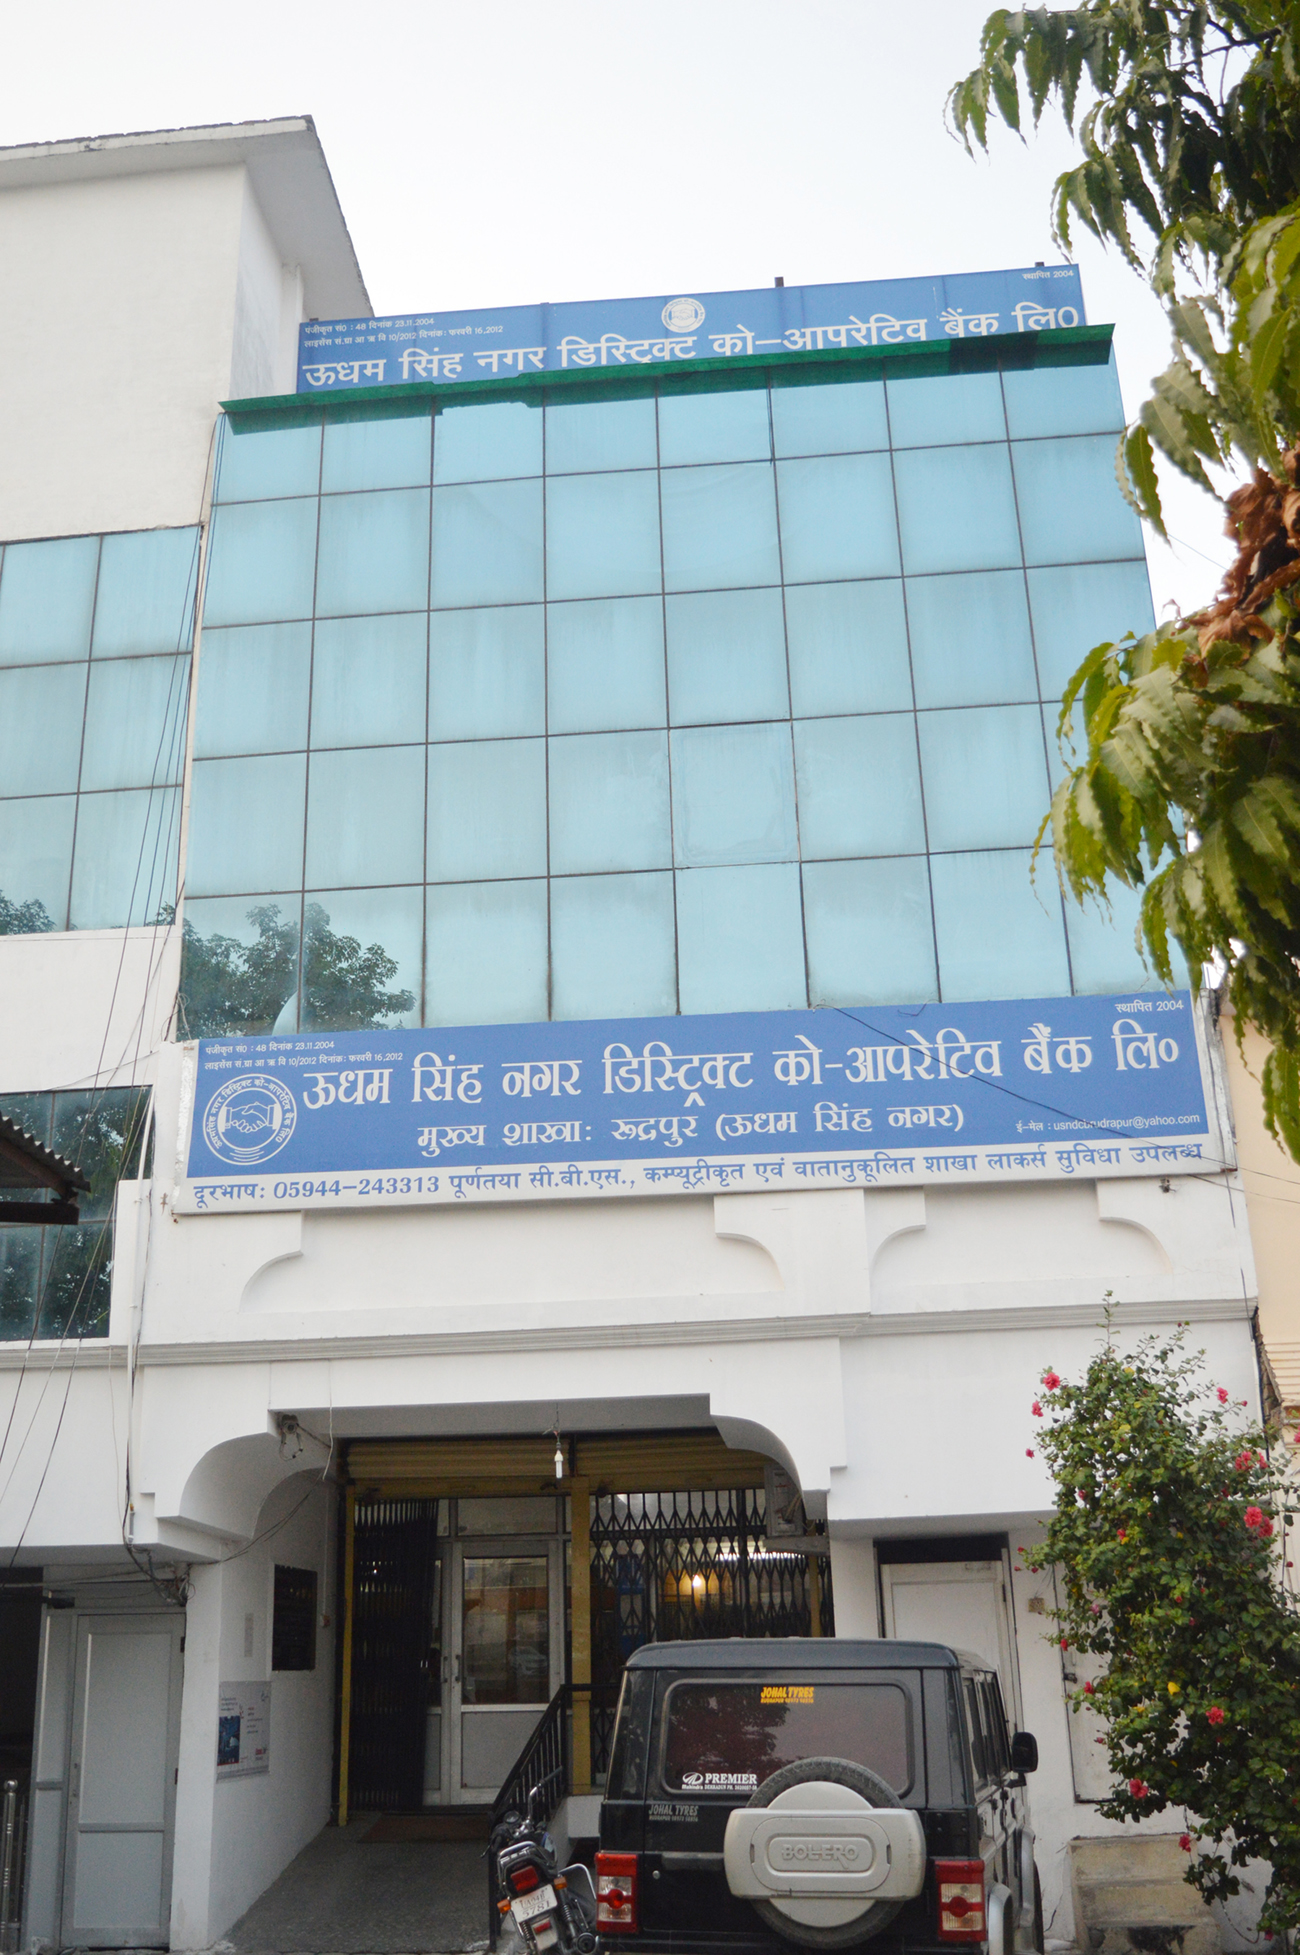 Udham Singh Nagar District coop bank